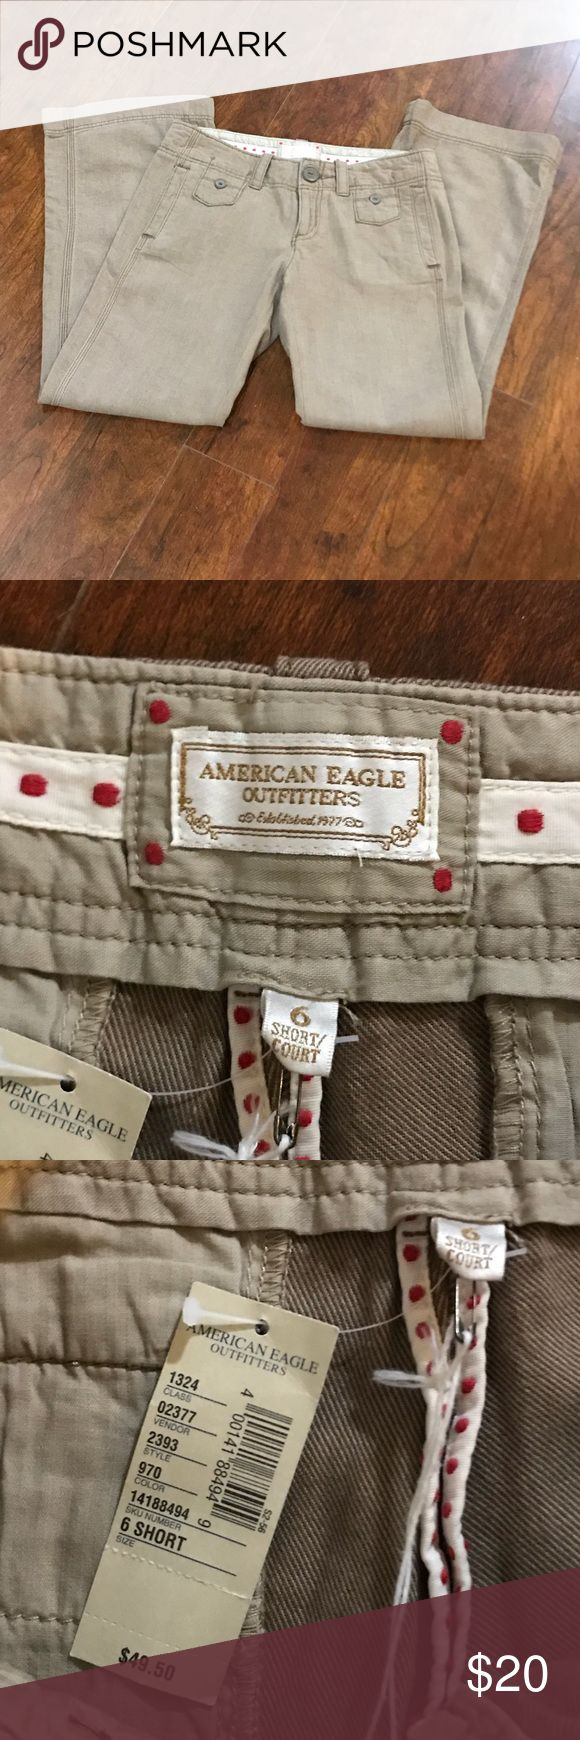 """NWT AMERICAN EAGLE BROWN WIDE LEG TROUSERS SZ 6S RISE- 8"""" INSEAM- 28""""  NEW WITH TAGS! NO DEFECTS! BEAUTIFUL BROWN TROUSERS   Please feel free to message me if you may have any questions.   Thank you for stopping by Please be sure to check us out daily for new inventory. American Eagle Outfitters Pants Trousers"""